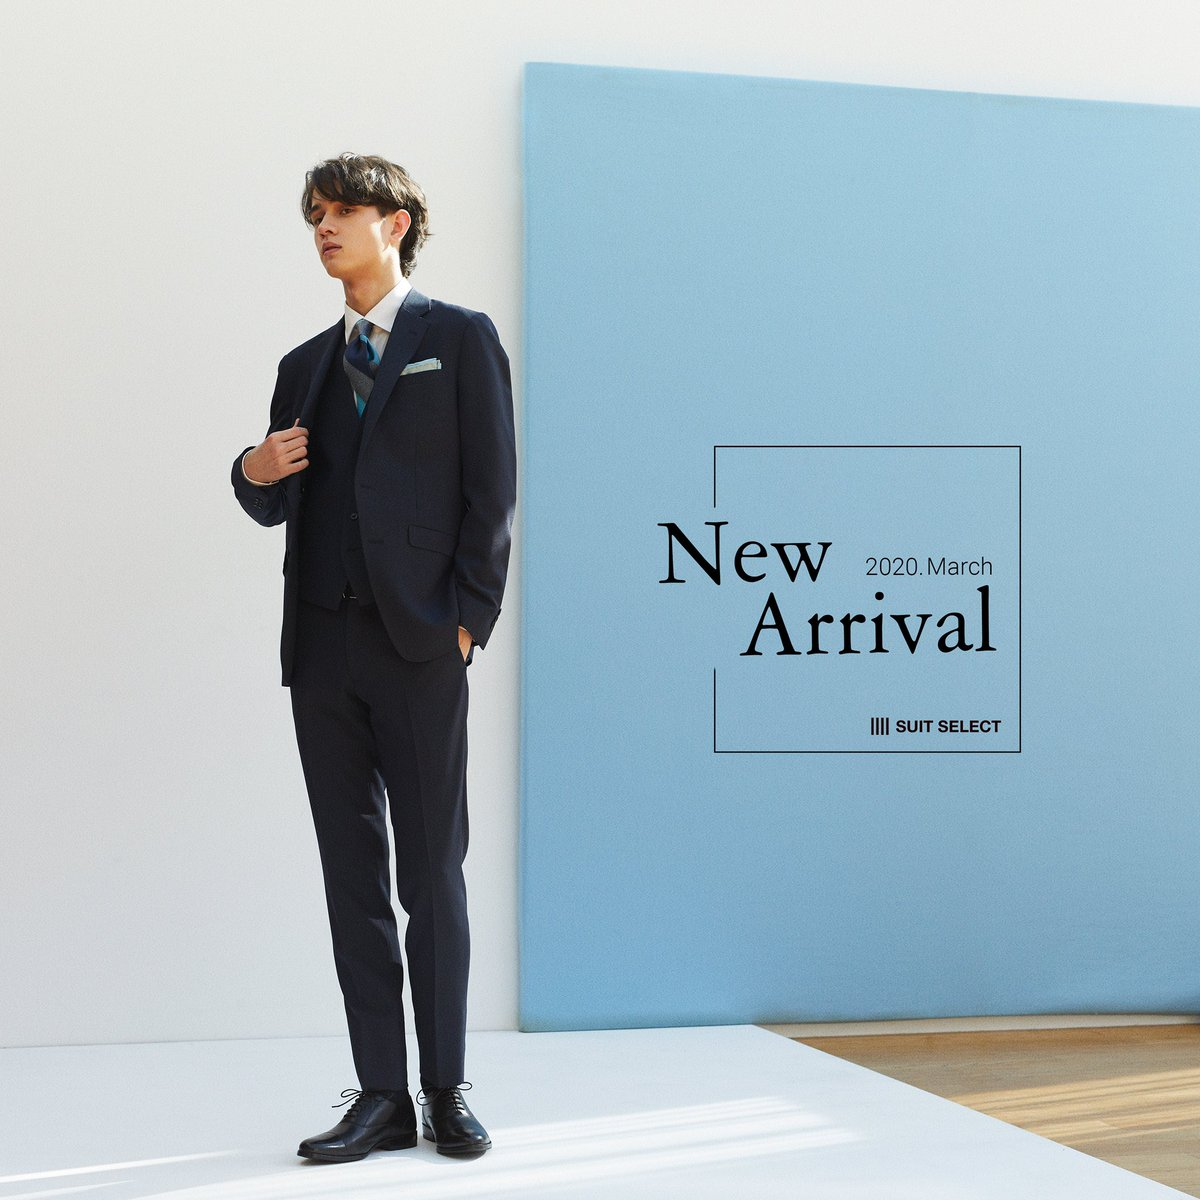 SUIT SELECT 2020S/S New Arrival #suit #スーツ #suitselect #スーツセレクト #スーツのある日常 #メンズ #メンズファッション #春夏 #新作 #トレンド #スリーピース #fashion #ootd #outfit #mens #mensfashion #2020ss #ss #new #newrrival #trend #3piece #produce #direction #vivacenextpic.twitter.com/z4GnuwYqXm